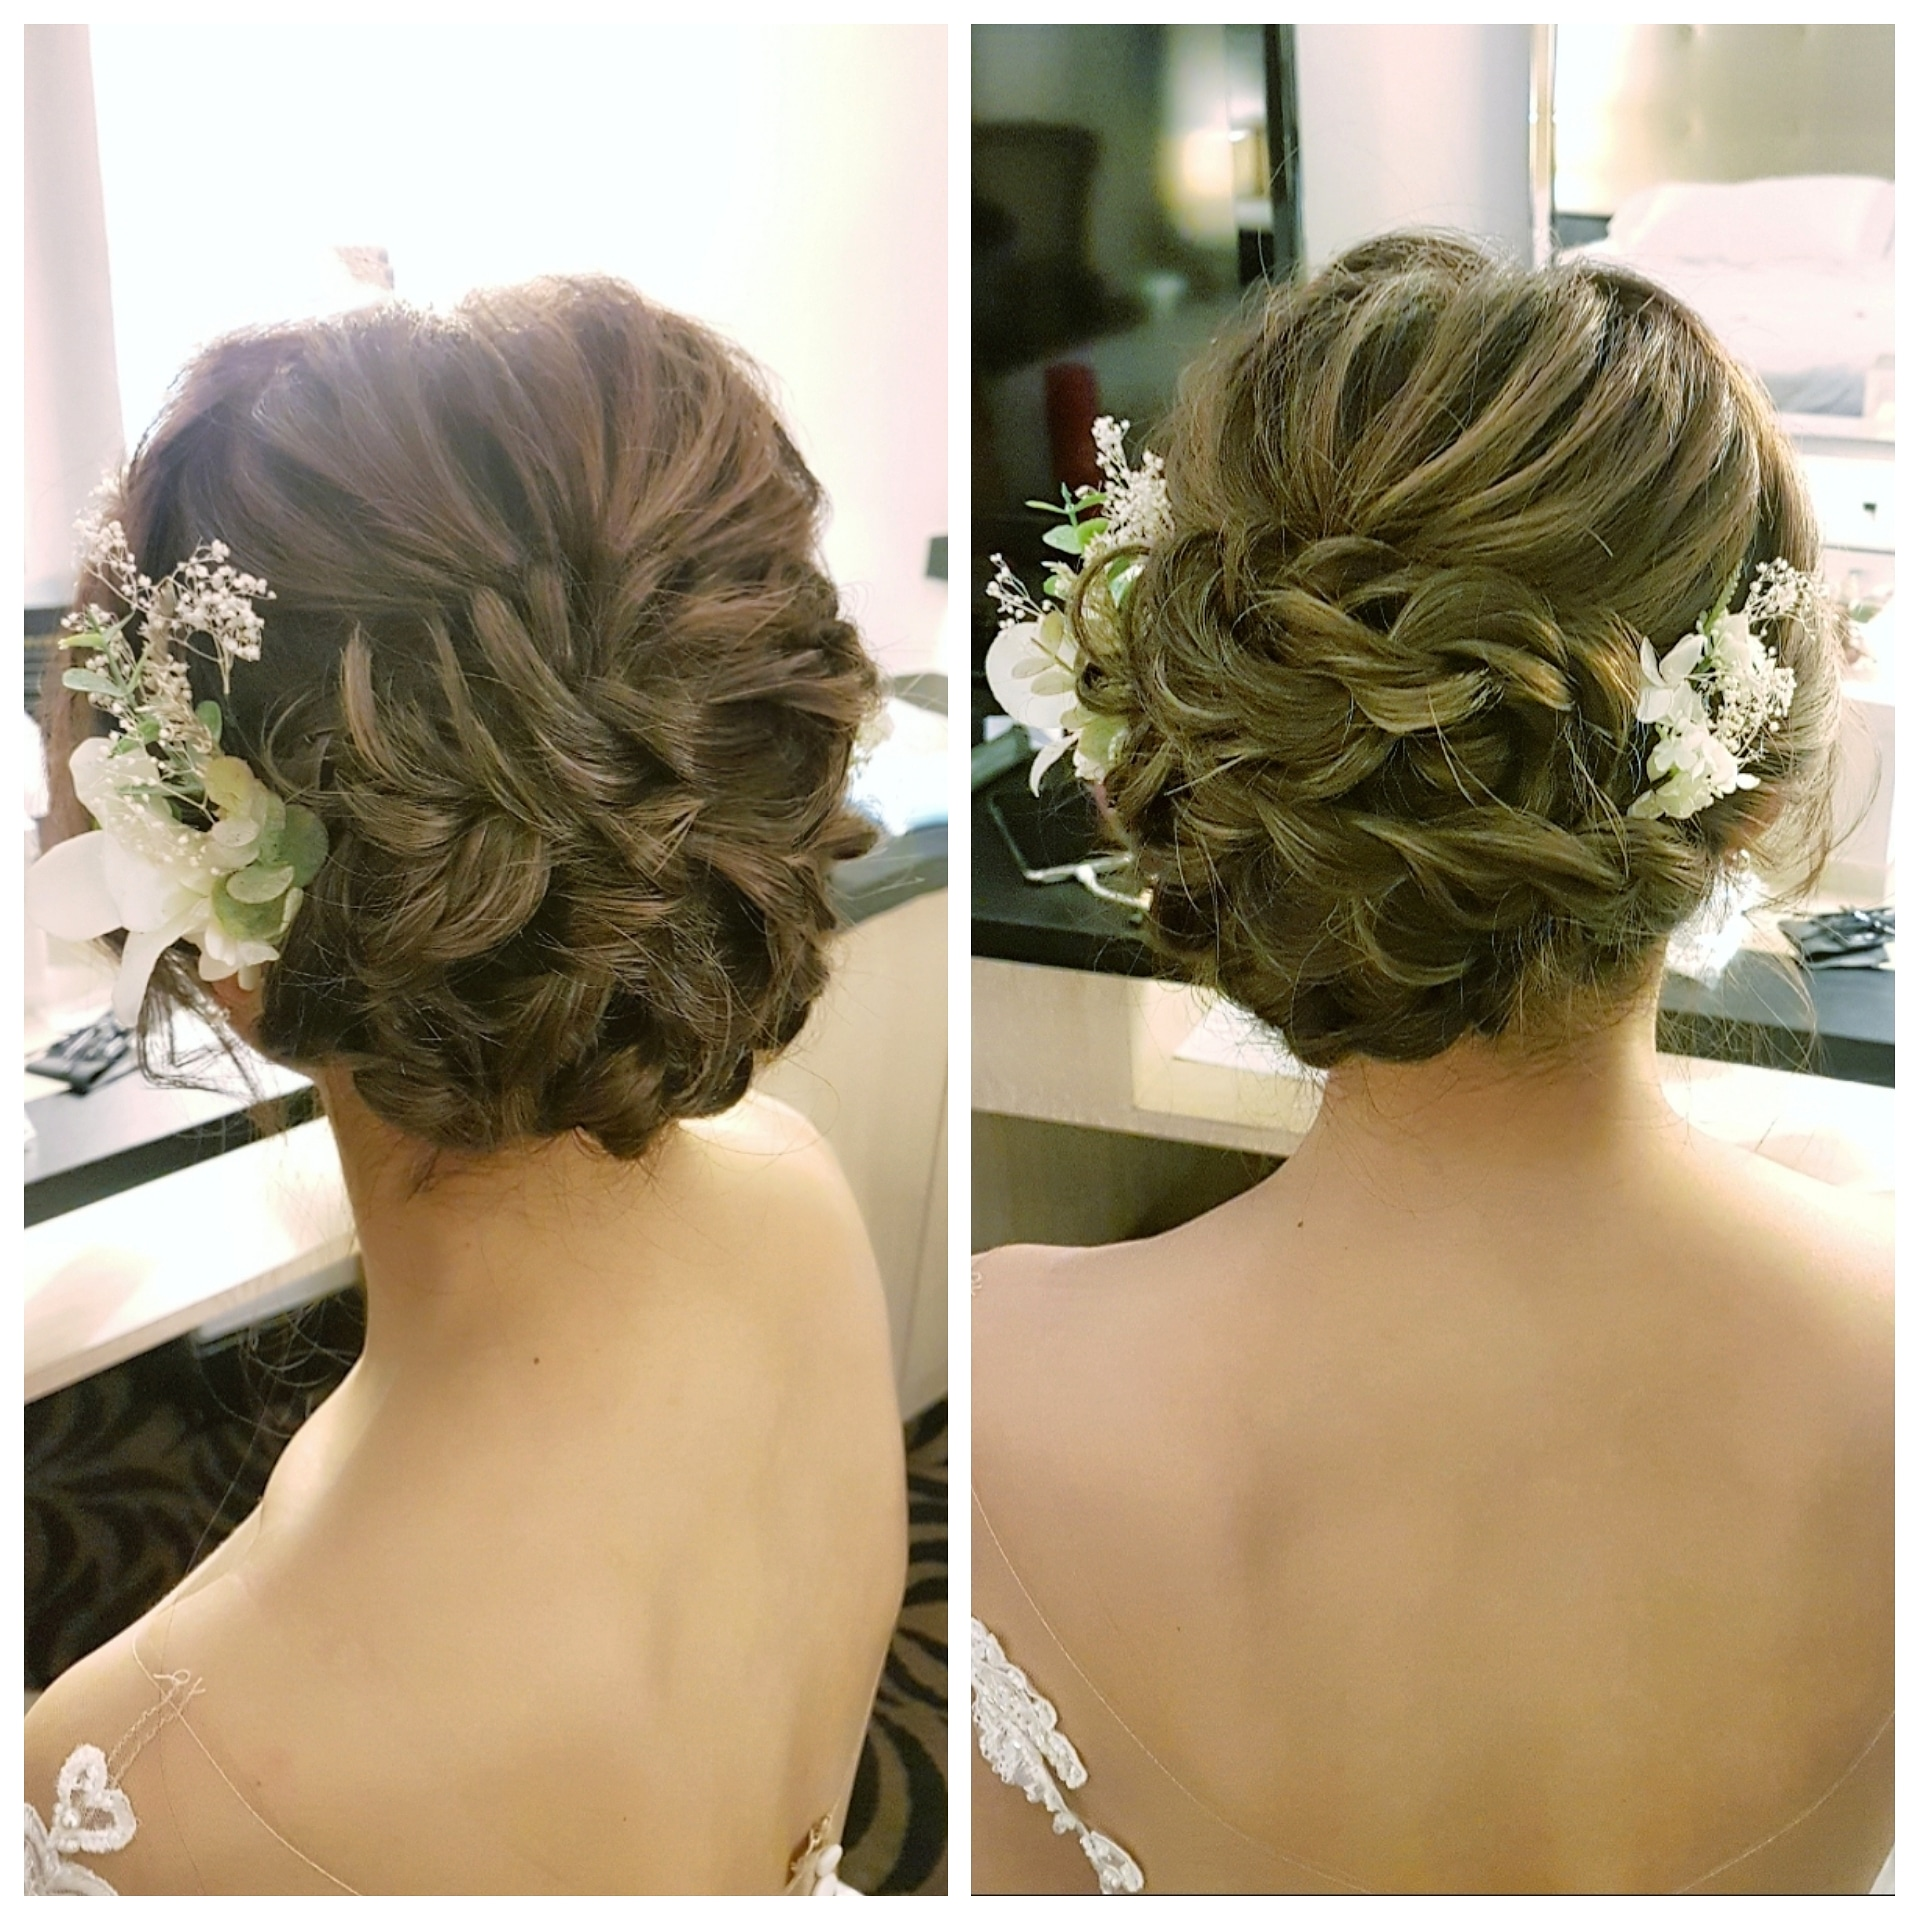 Neat braided up do with flowers